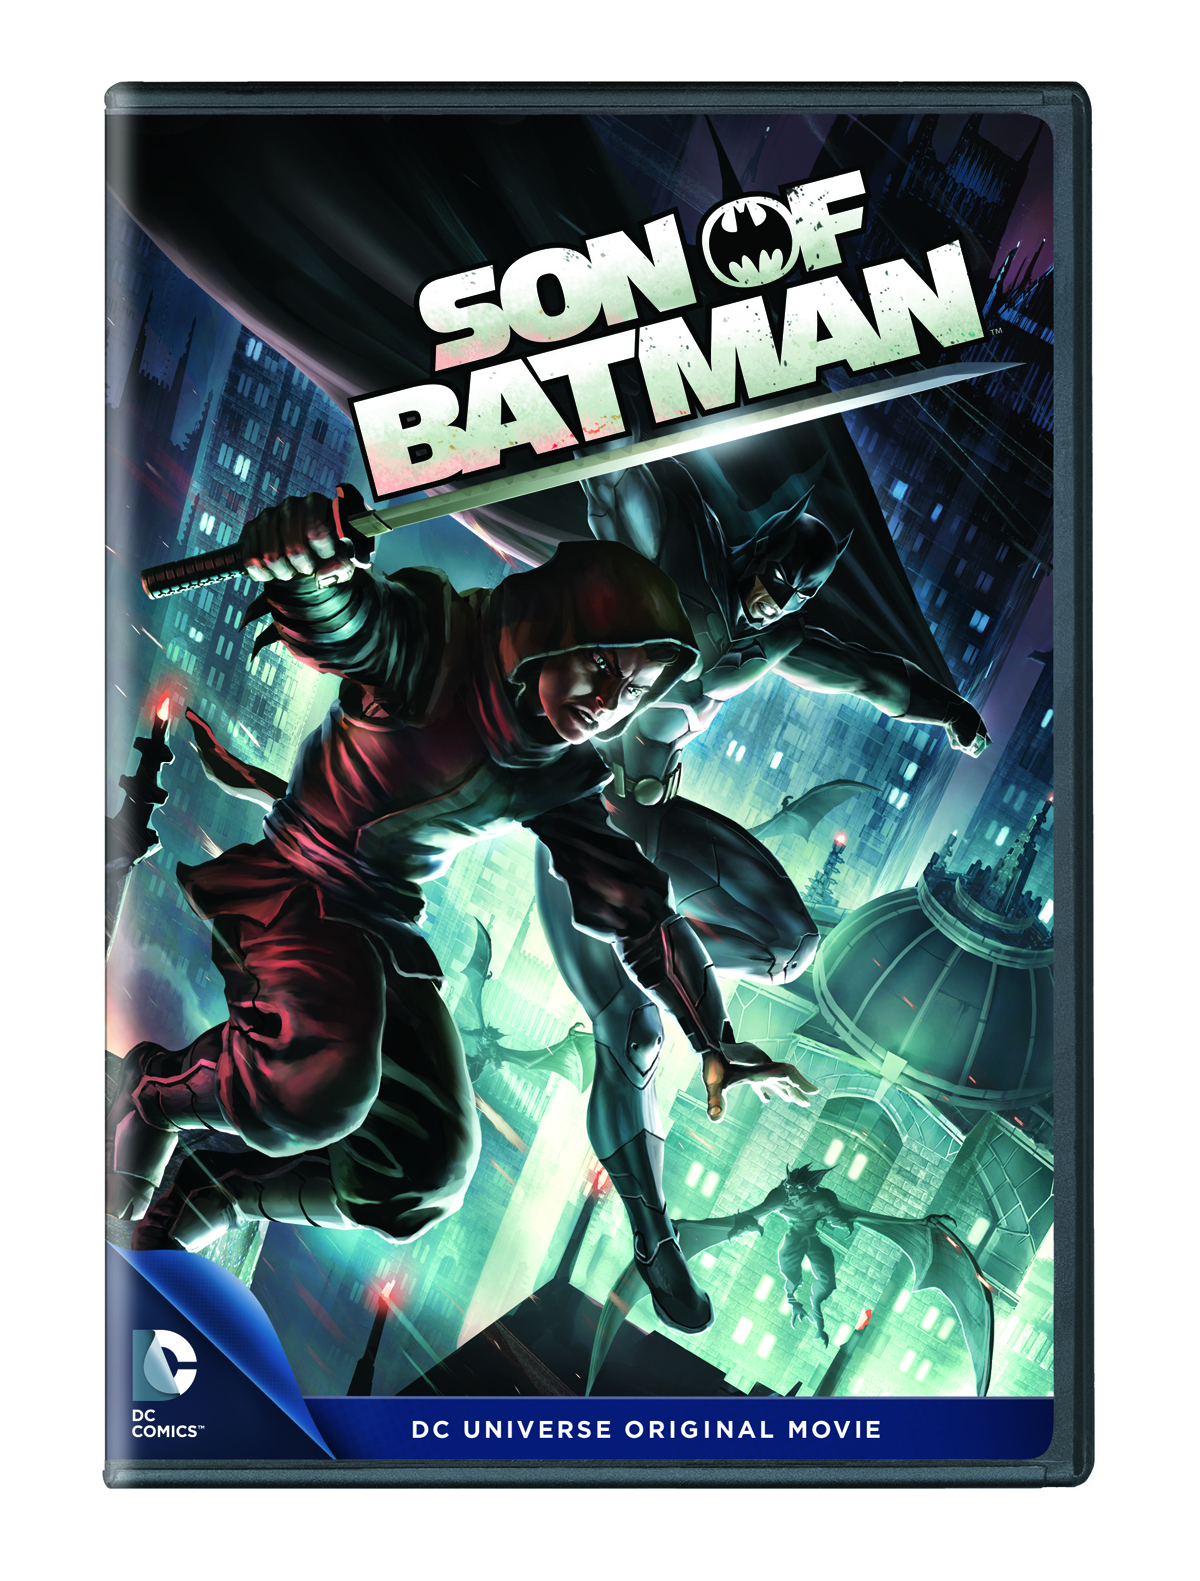 DCU SON OF BATMAN DVD